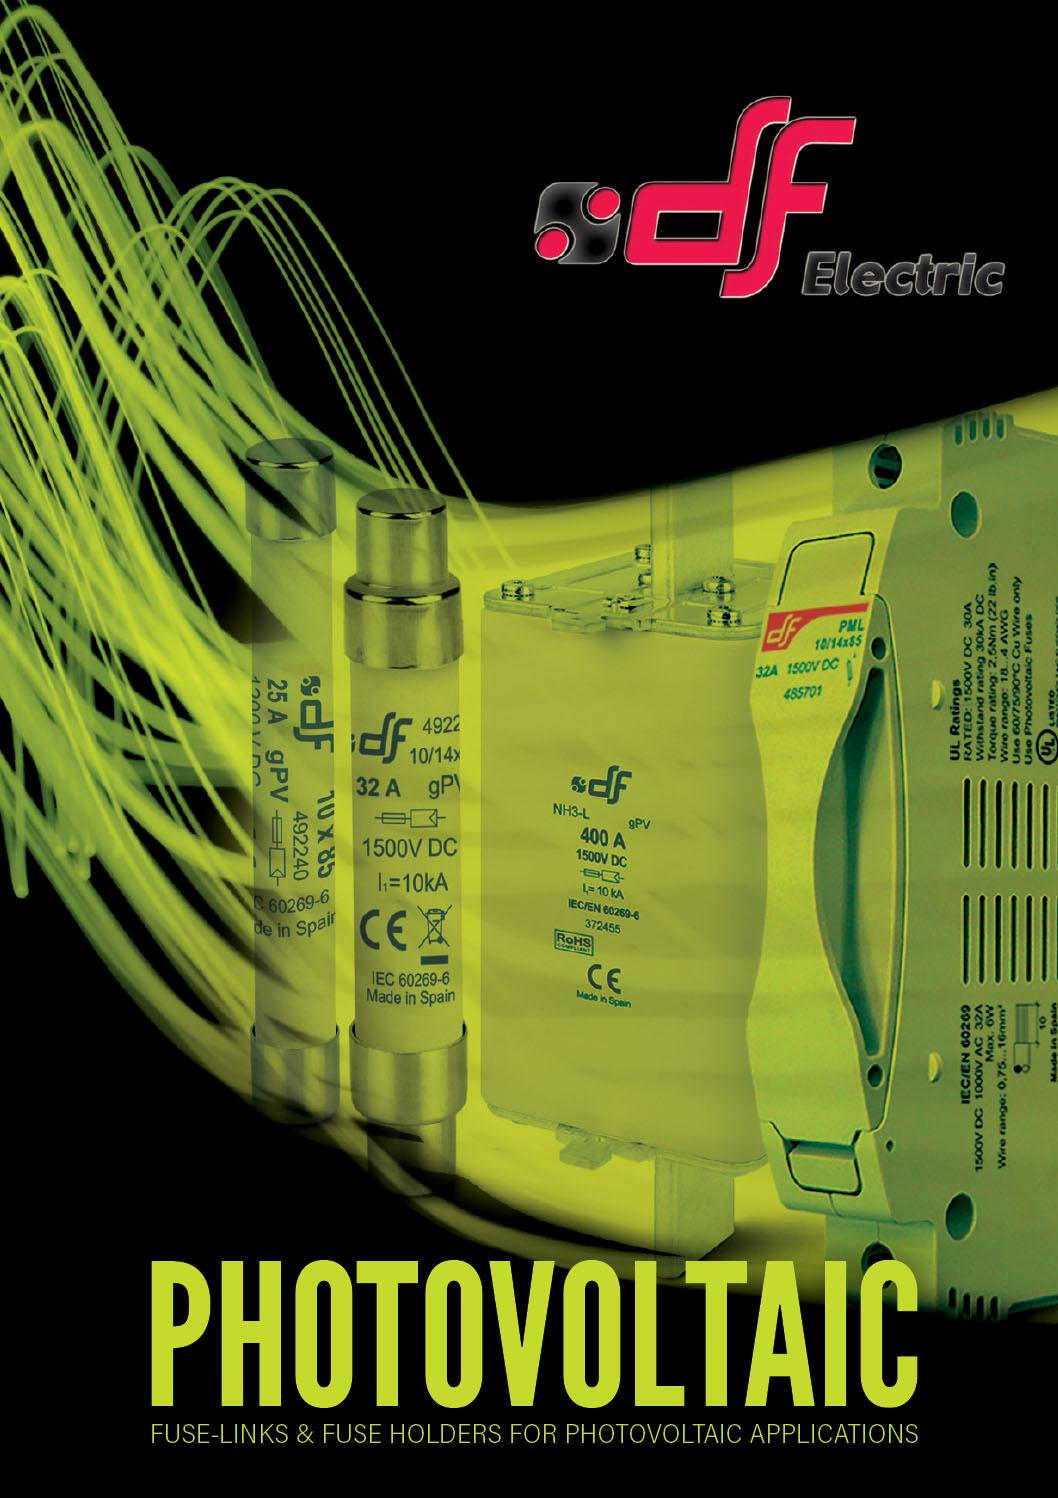 DF photovoltaic-fuses-and-bases supplied by ElectroMechanica